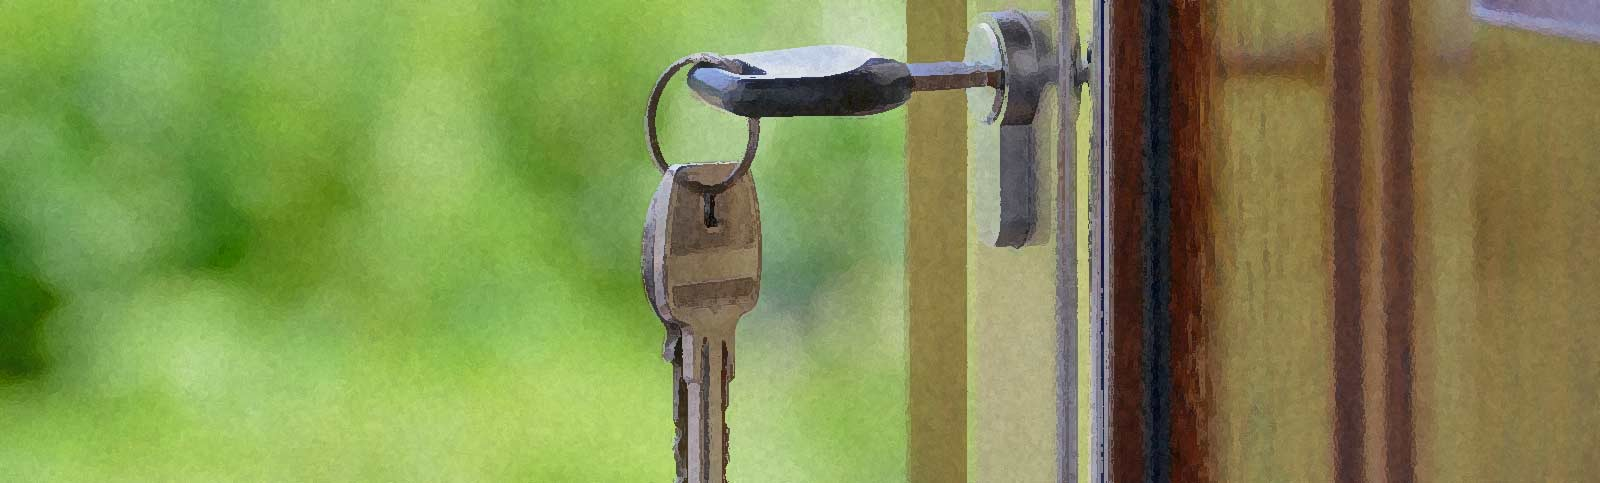 Should I Change the Locks to My Commercial Rental Property?